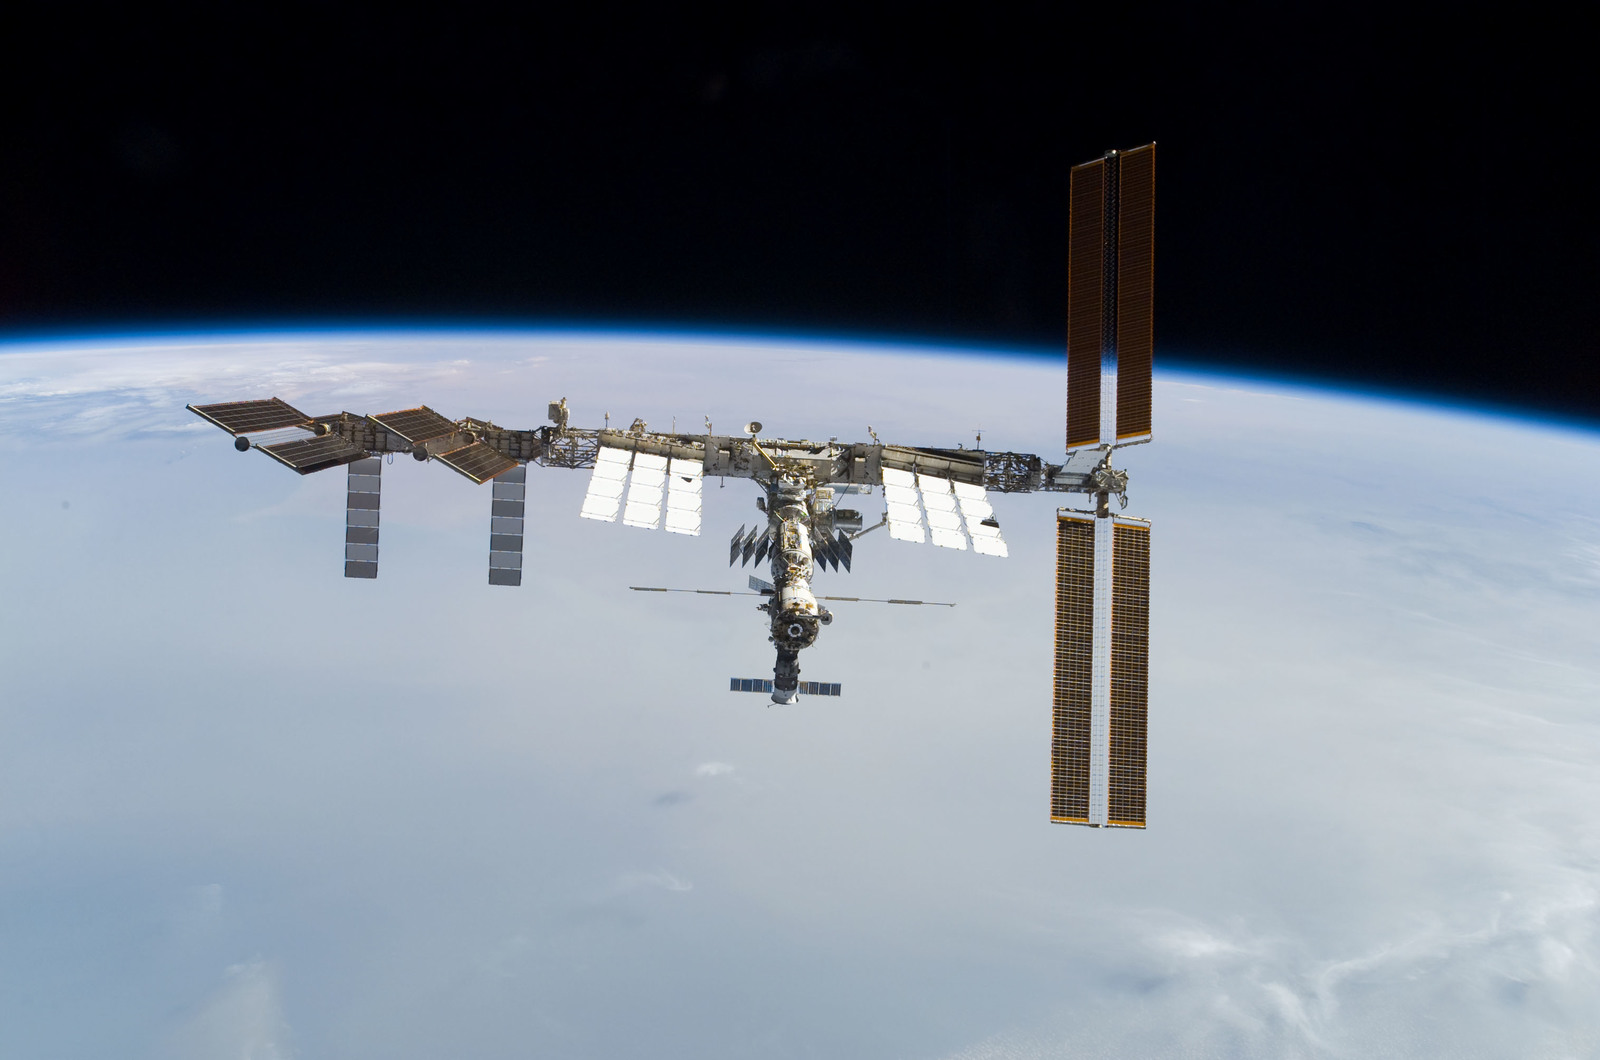 S122E010959 - STS-122 - View of ISS after STS-122 Undocking